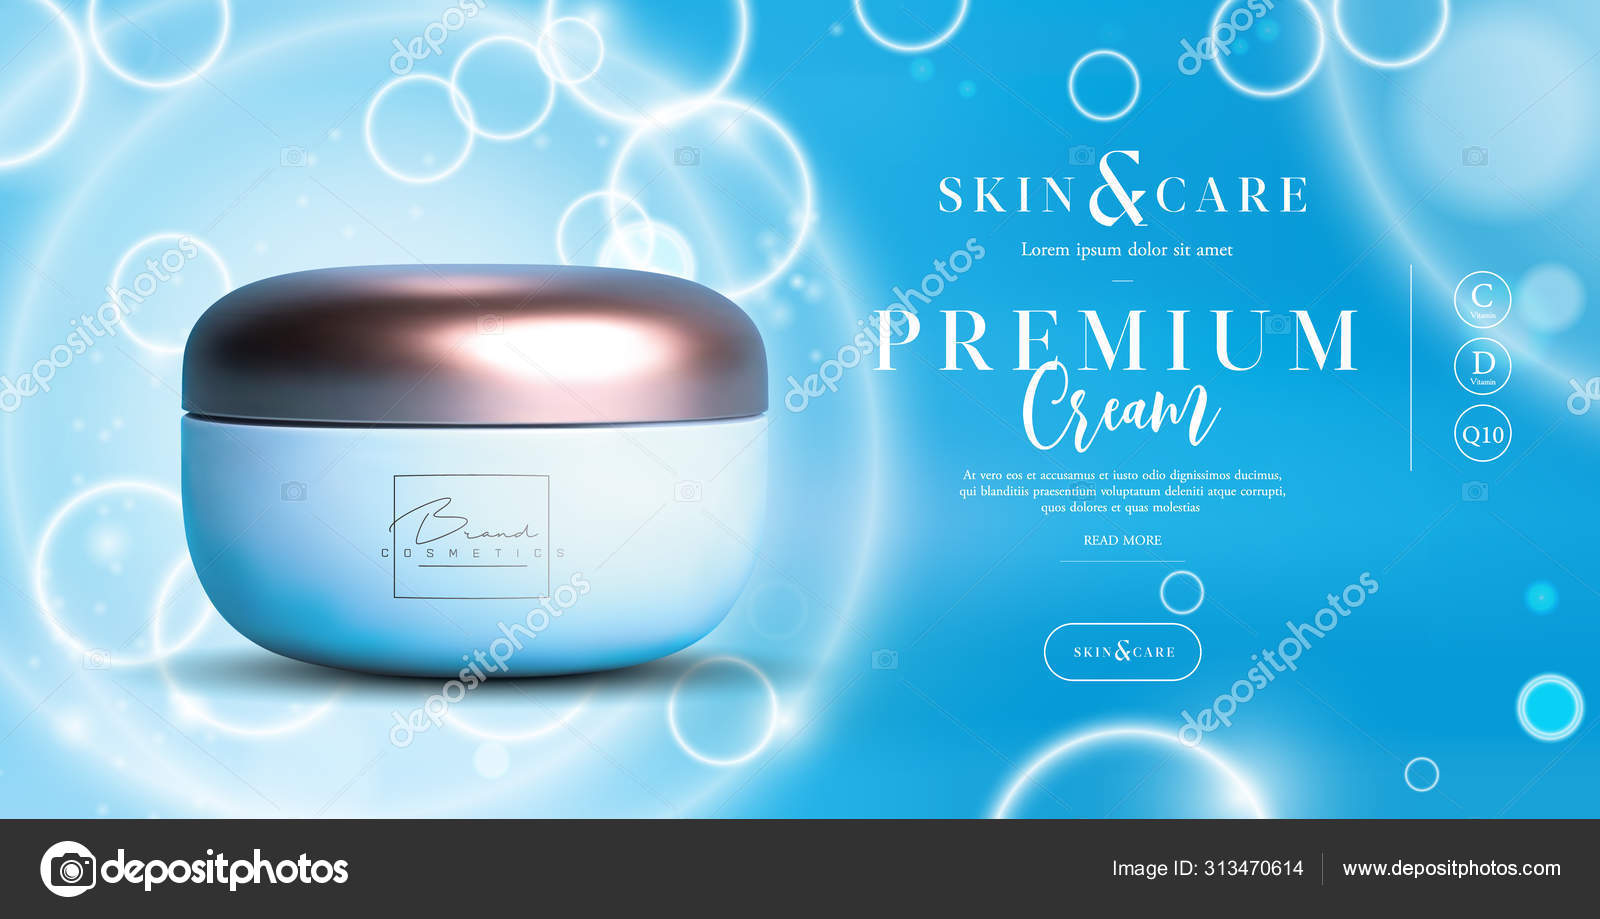 Elegant Cosmetic Background Cream Jar For Skin Care Products Luxury Facial Cream Beautiful Flyer Or Banner Design For Cosmetic Ads Blue Cosmetic Premium Cream Template Makeup Products Brand Stock Vector C